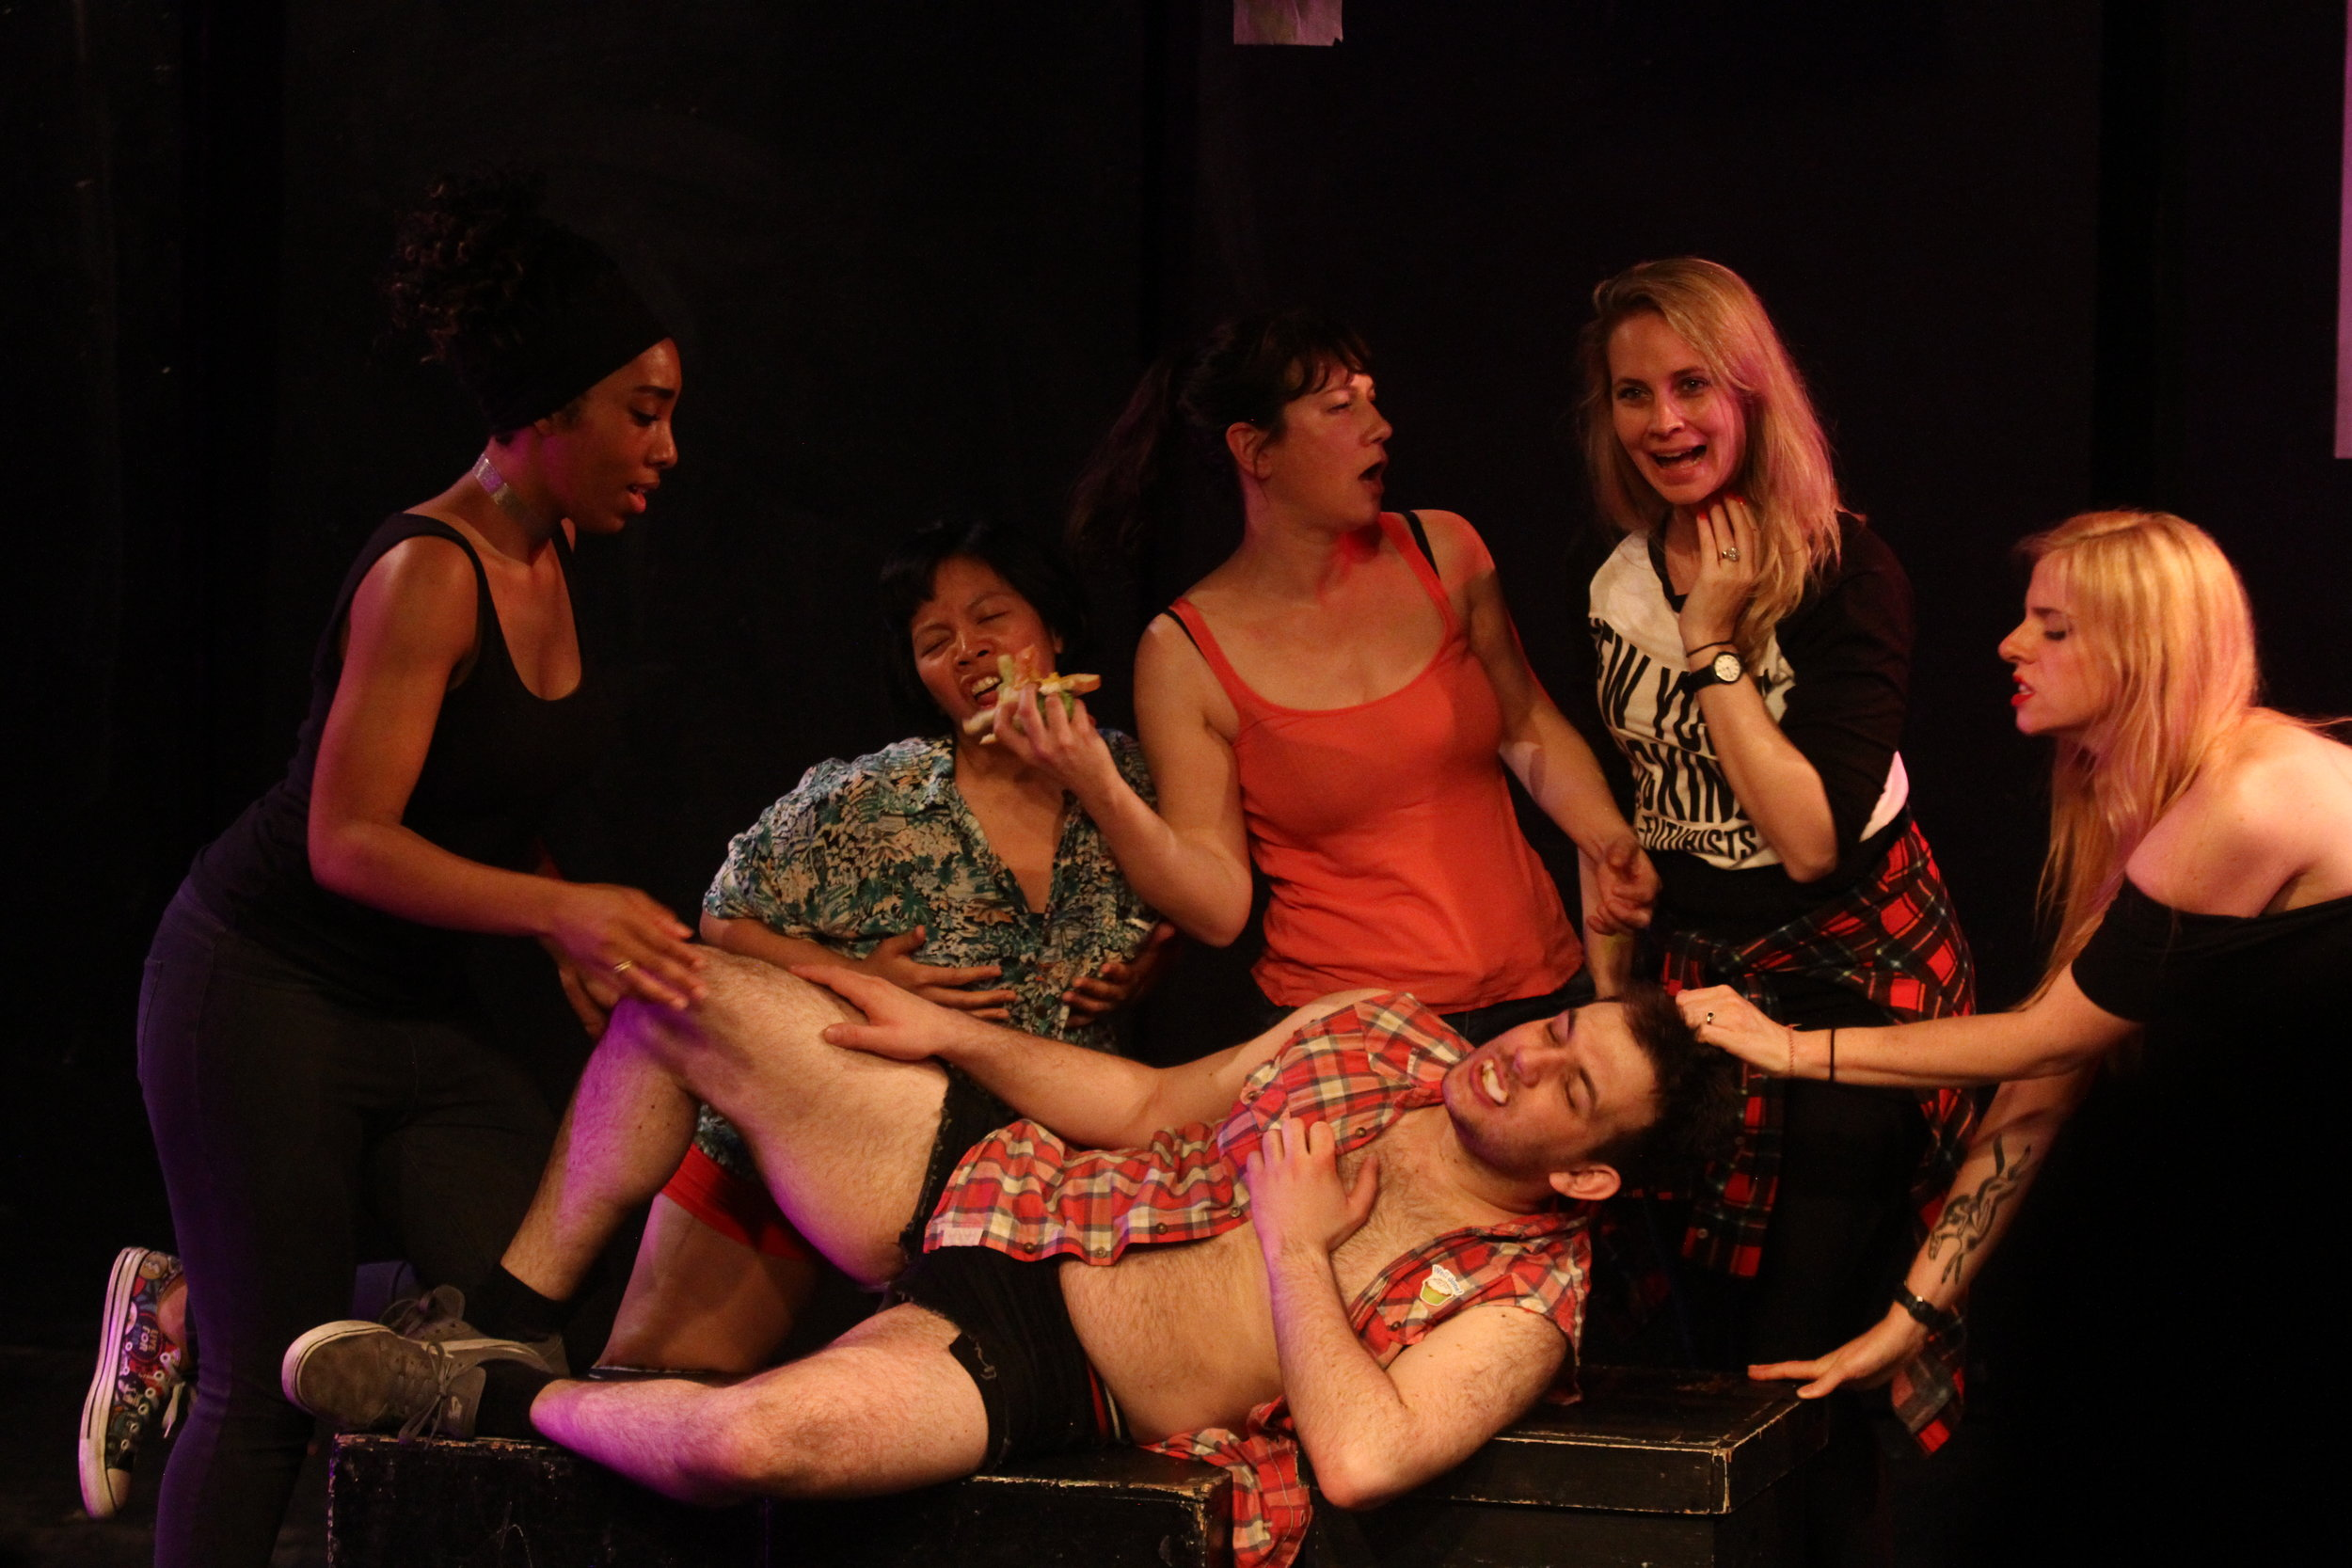 KM and Meg, far right, performing together in the INFINITE wrench. pic/ Charlotte arnoux/ www.charlottearnoux.com